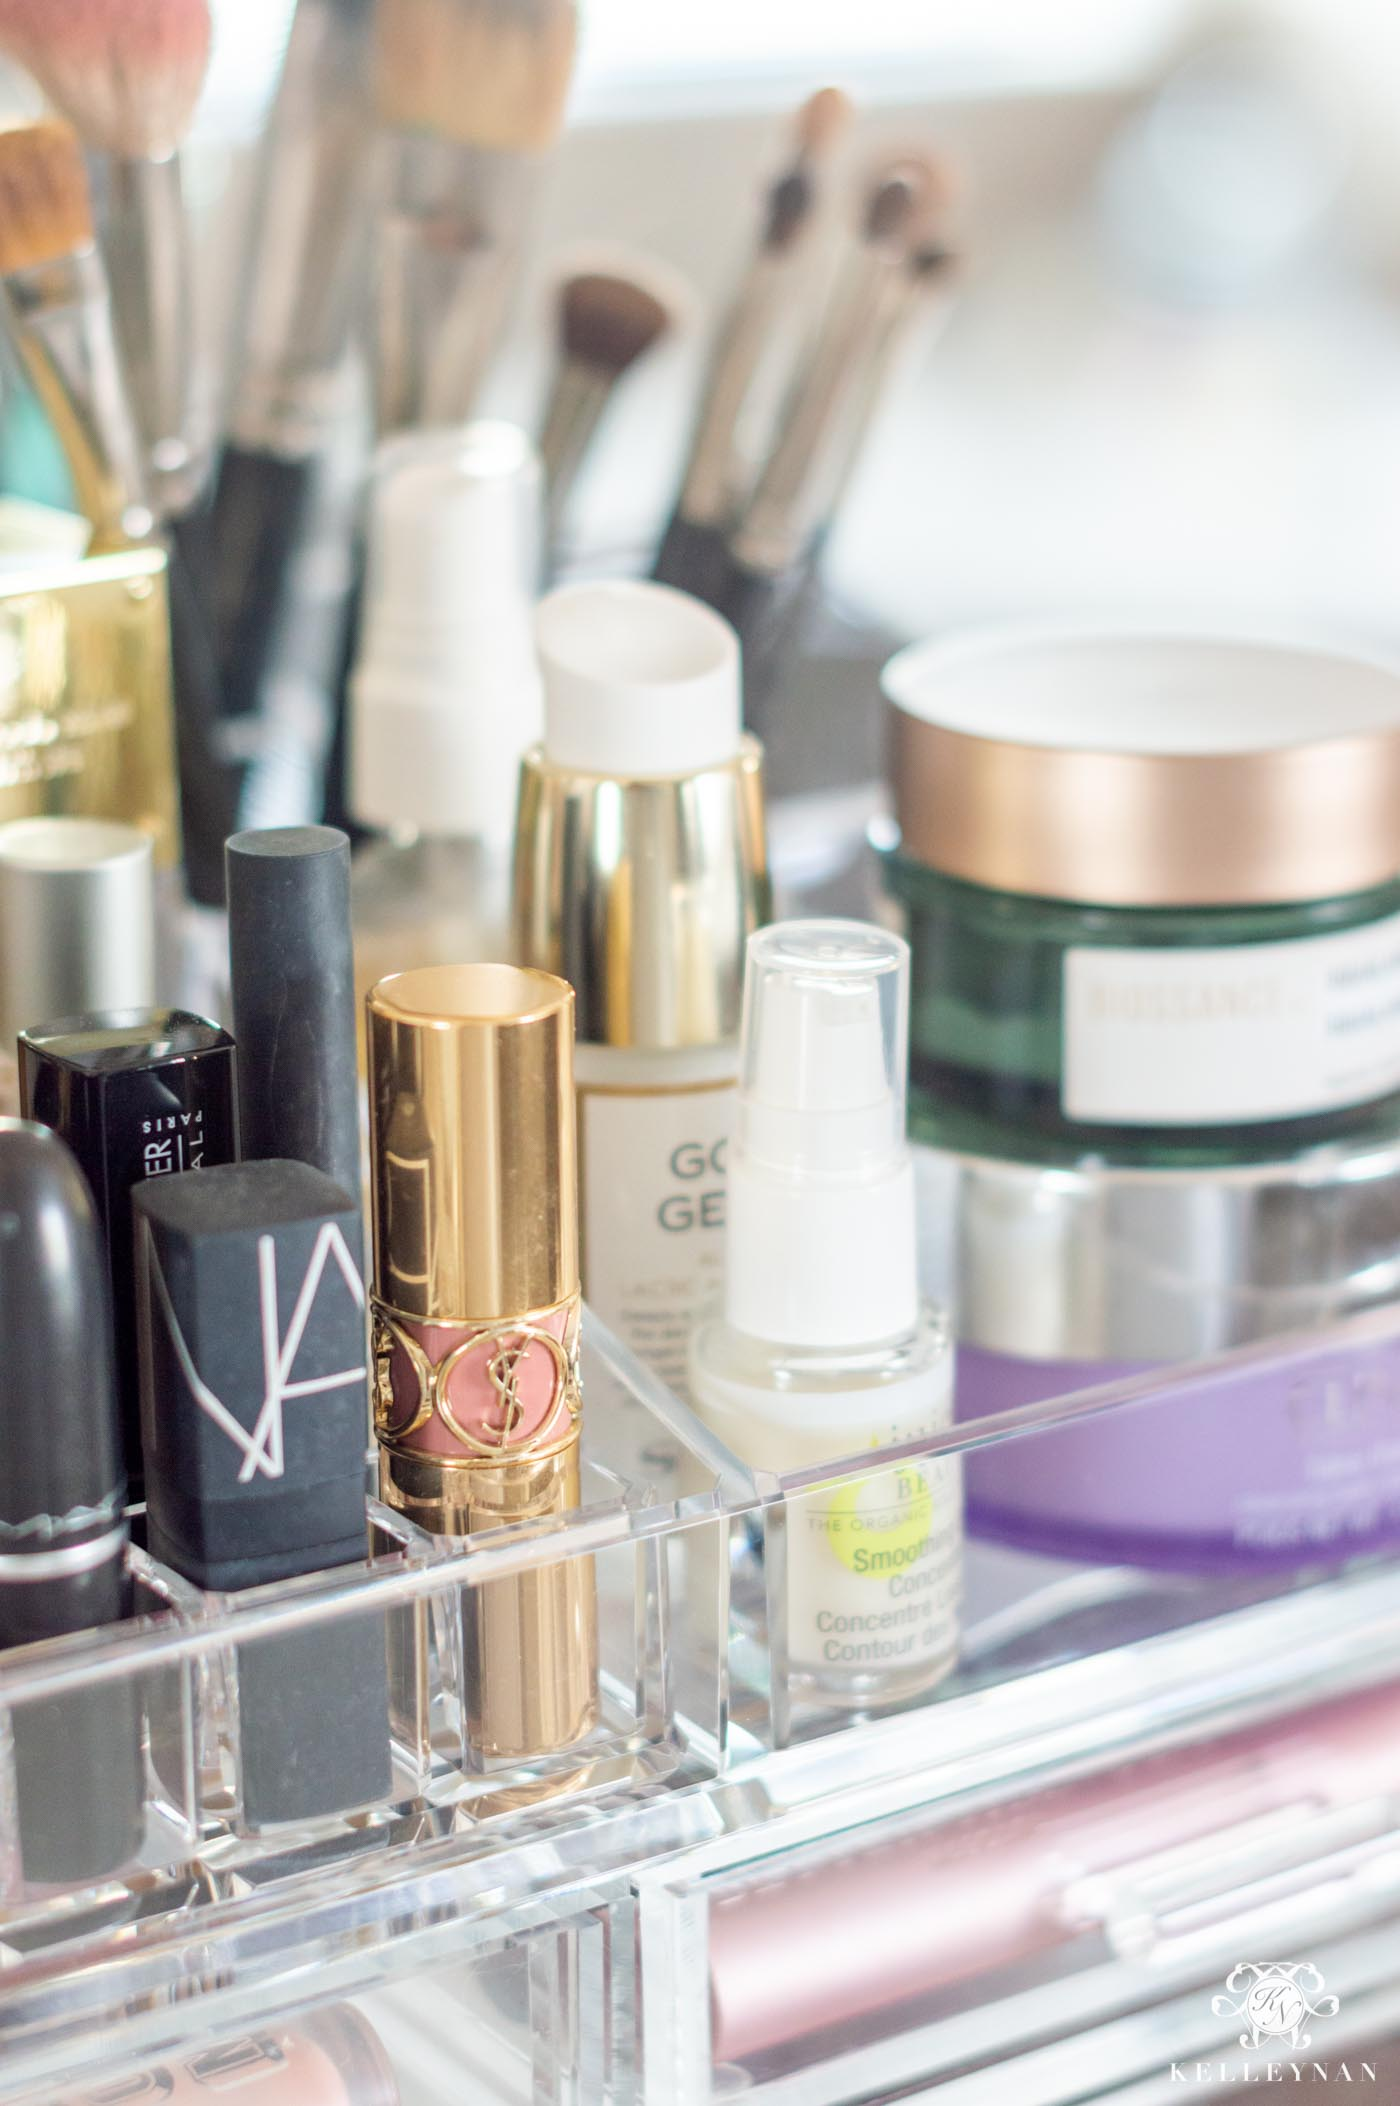 How to Organize Makeup on the Bathroom Vanity